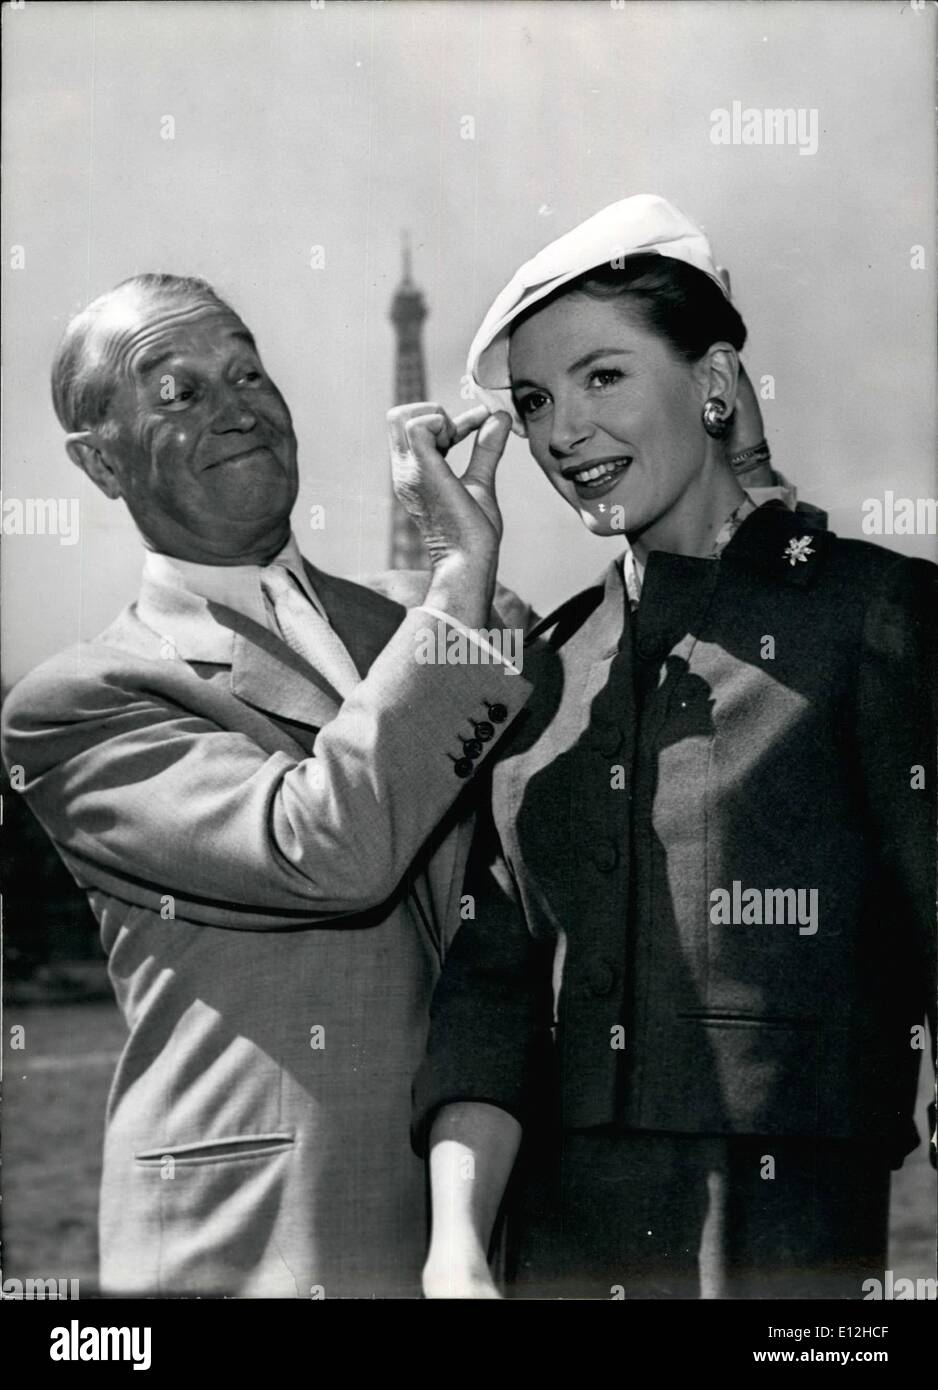 Jan. 04, 2012 - Maurice Chevalier Partner of Deborah Kerr. French famous actor Maurice Chevalier will be the partner of famous English Actress Deborah Kerr in the film ''Mon Cher Ange'' (My Dear Angel), Realisation Jean Negulesco. NPM: Maurice Chevalier with lovely Deborah Kerr wearing a cap, in Paris. - Stock Image